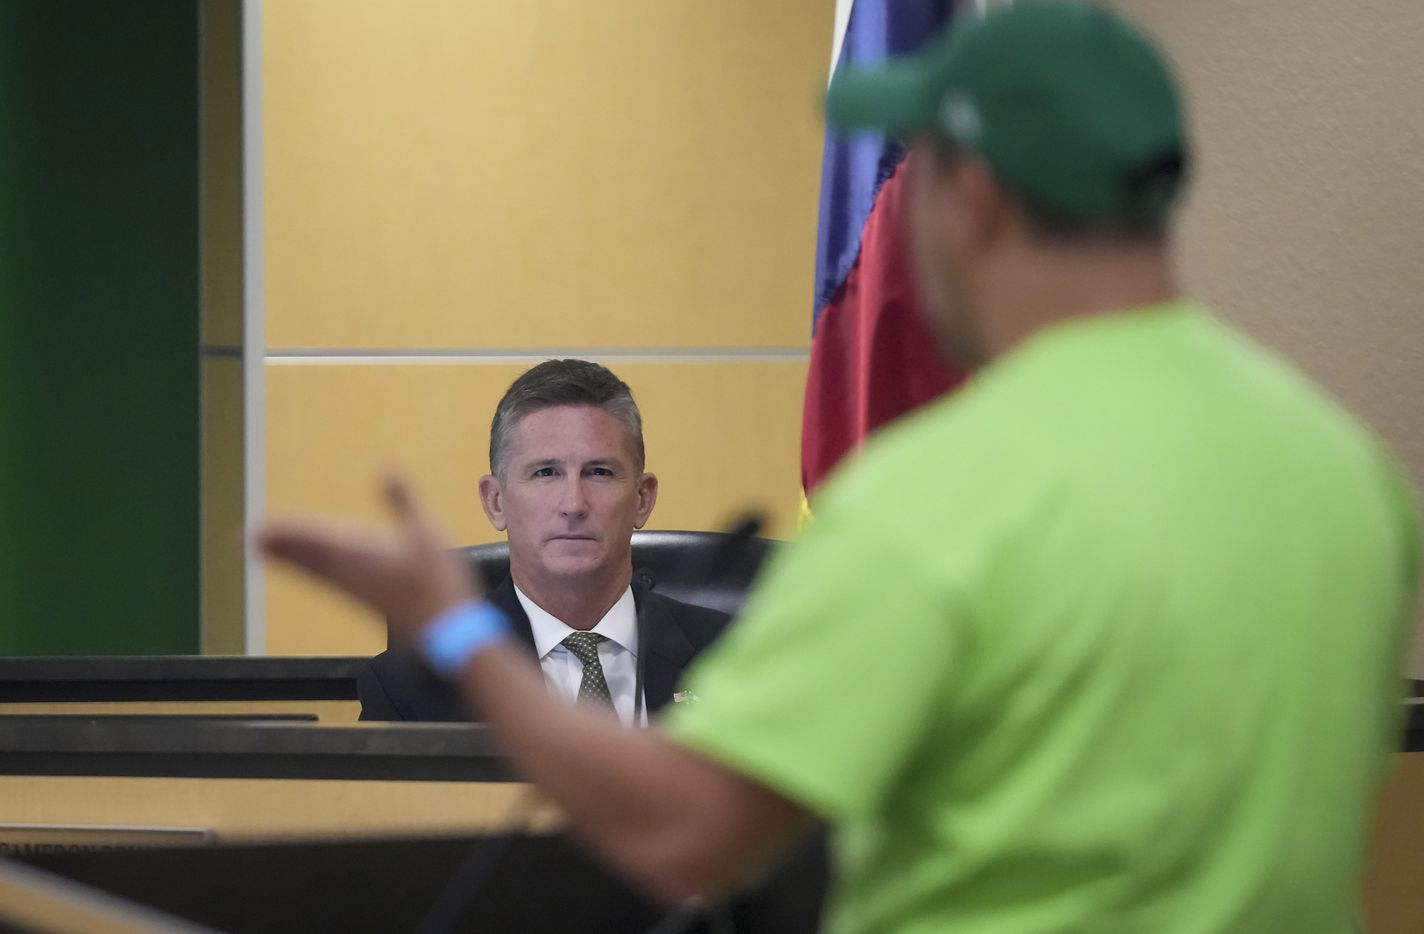 Trustee Cam Bryan listens to a speaker opposed to mask mandates during public comment at the Carroll ISD school board meeting on Monday, Aug. 23, 2021, in Southlake, Texas. (Smiley N. Pool/The Dallas Morning News)